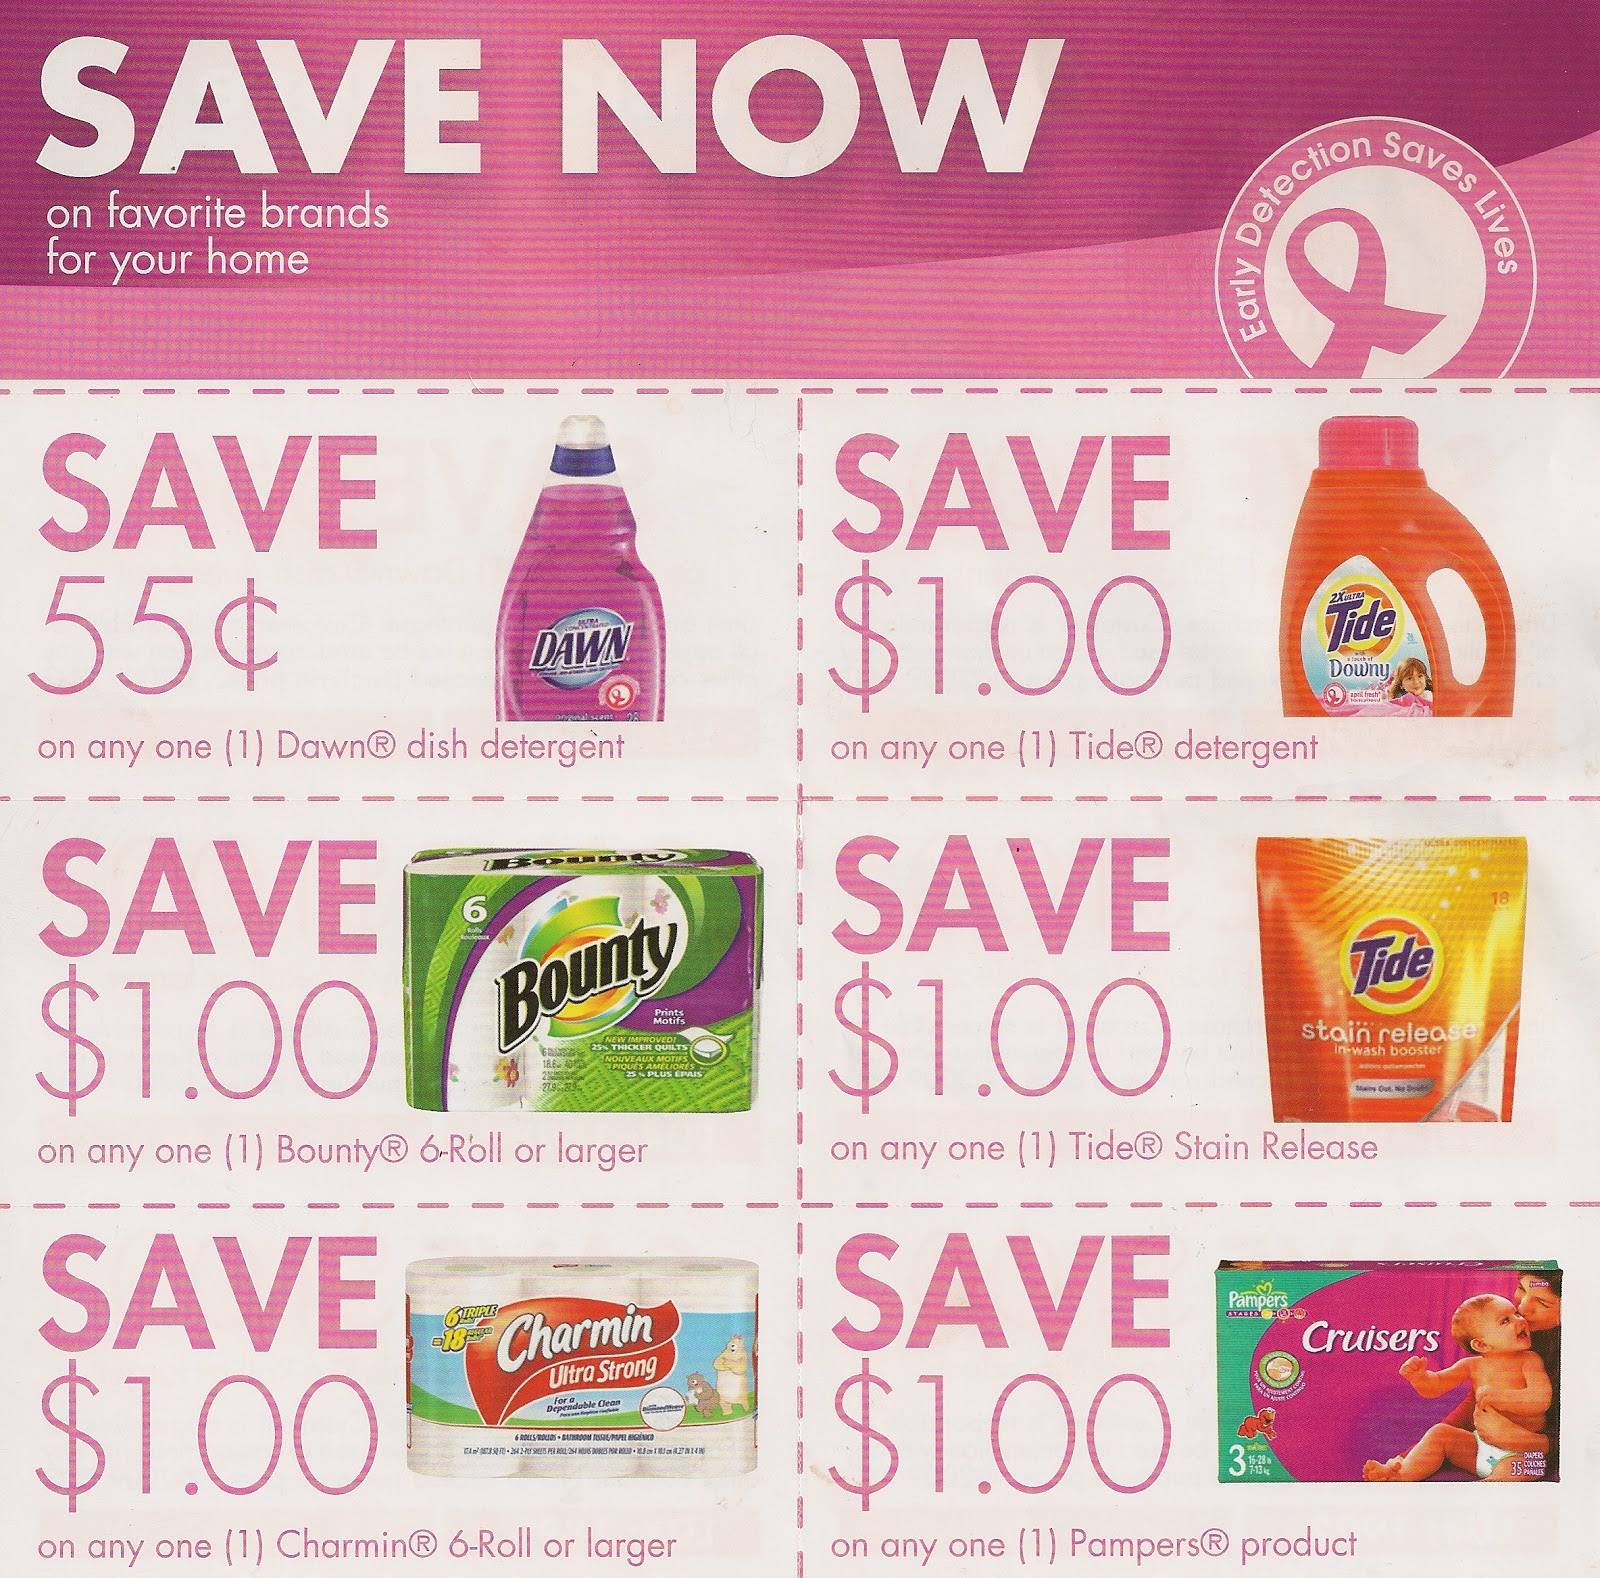 Pge coupons canada